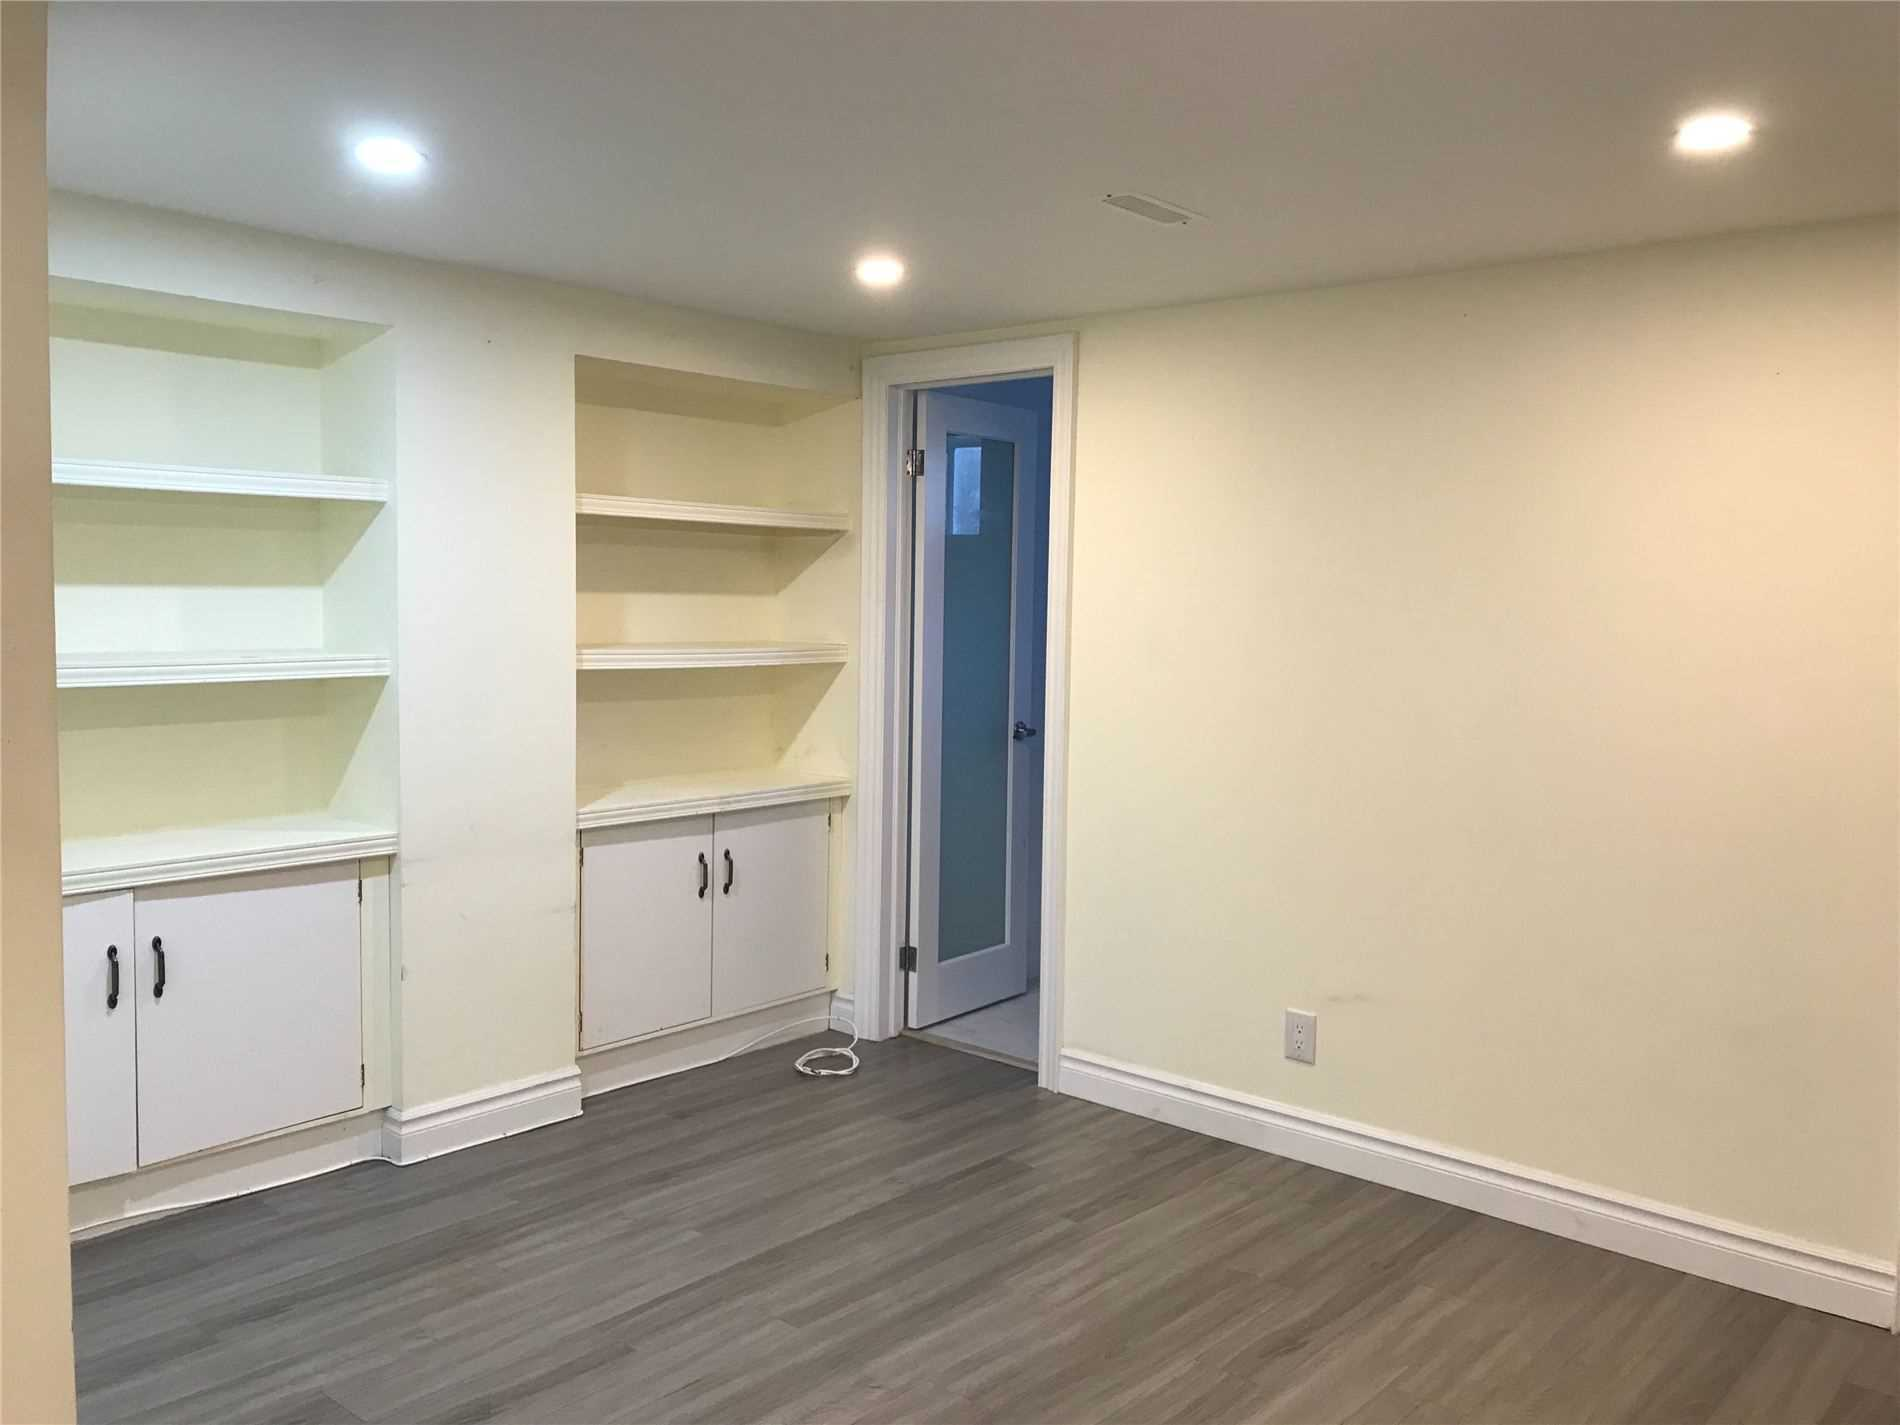 Detached house For Lease In Toronto - 26 Woodcliff Pl, Toronto, Ontario, Canada M3B3A6 , 2 Bedrooms Bedrooms, ,2 BathroomsBathrooms,Detached,For Lease,Woodcliff